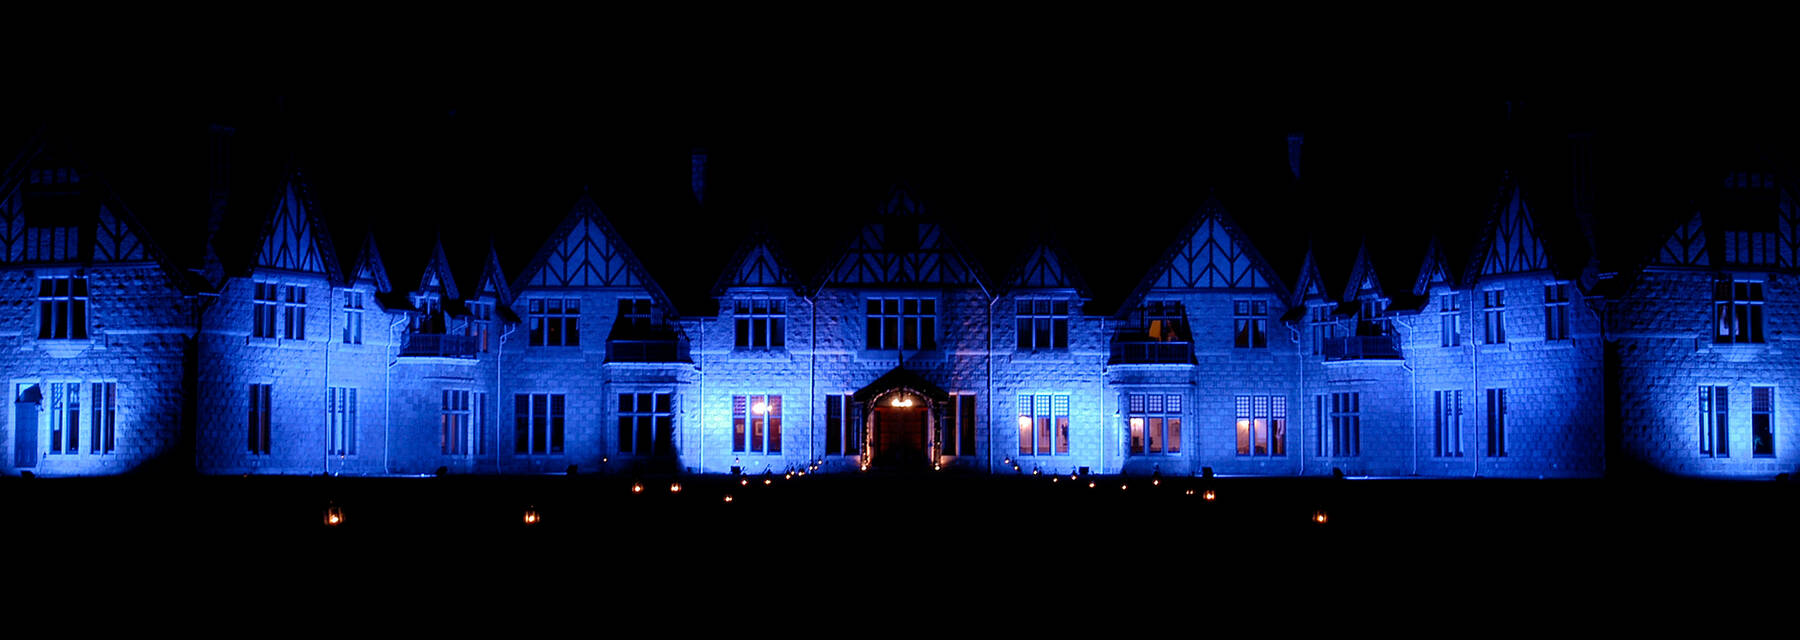 Mar Lodge lit up at night with blue lights